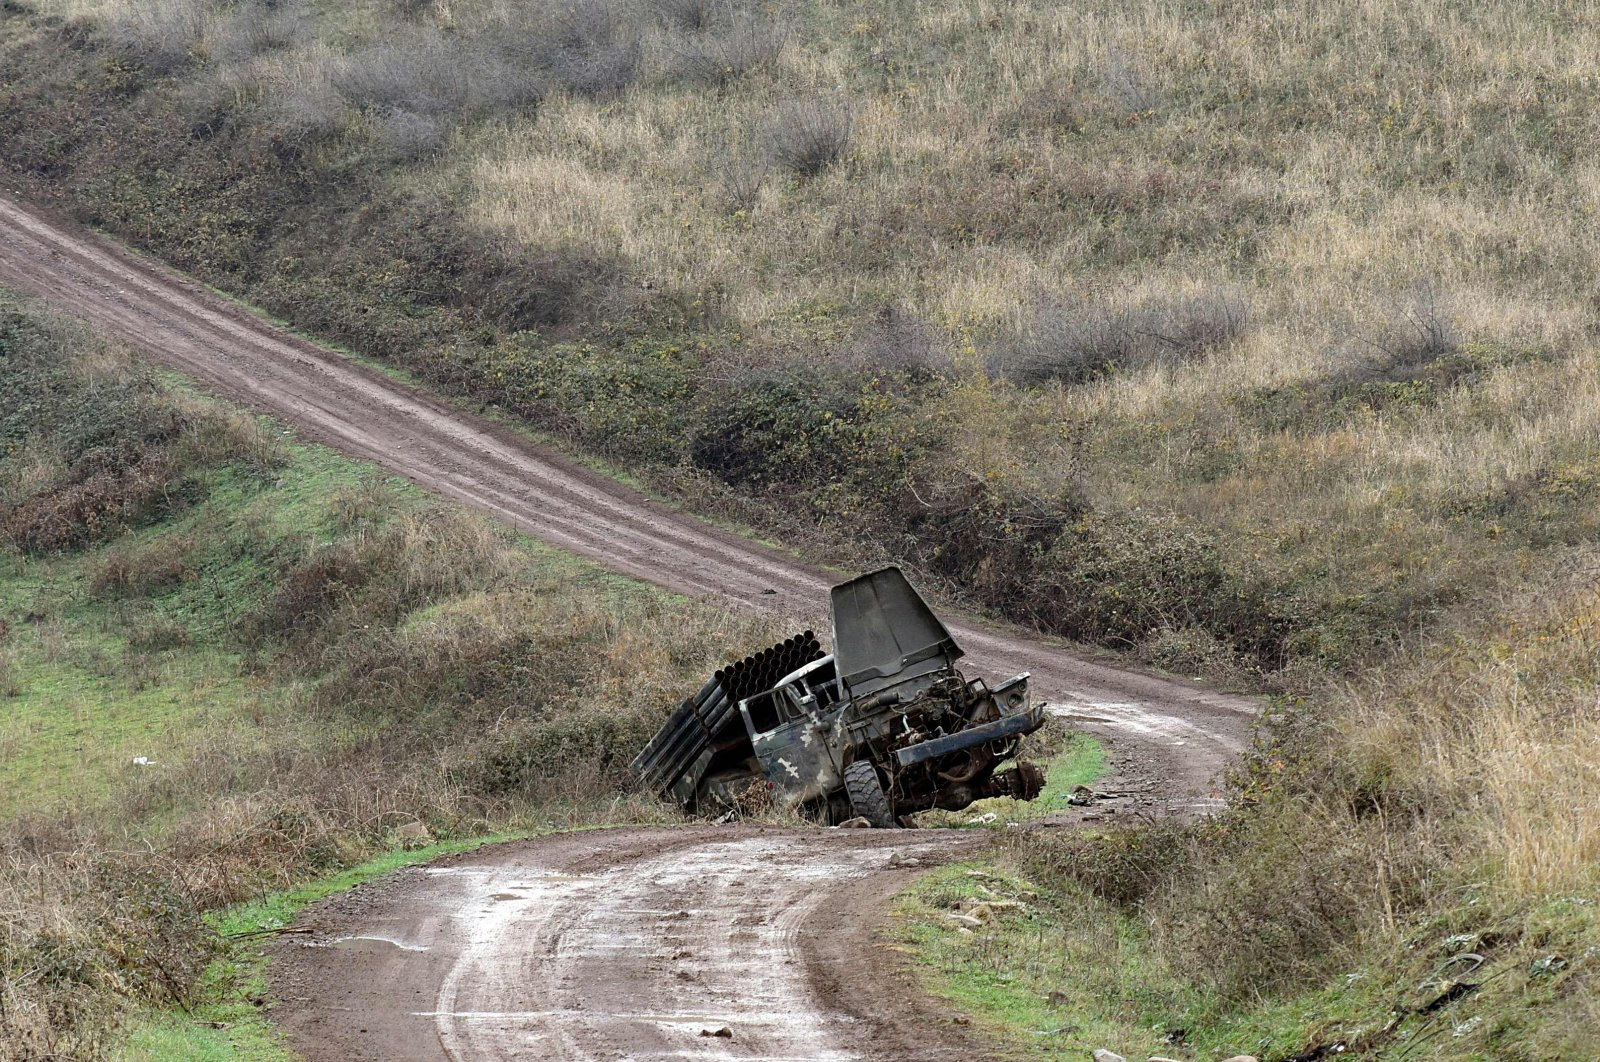 Areas destroyed by Armenian military hardware in the countryside outside the towns of Hadrut and Khojavend, Nov. 30, 2020. (AFP Photo)